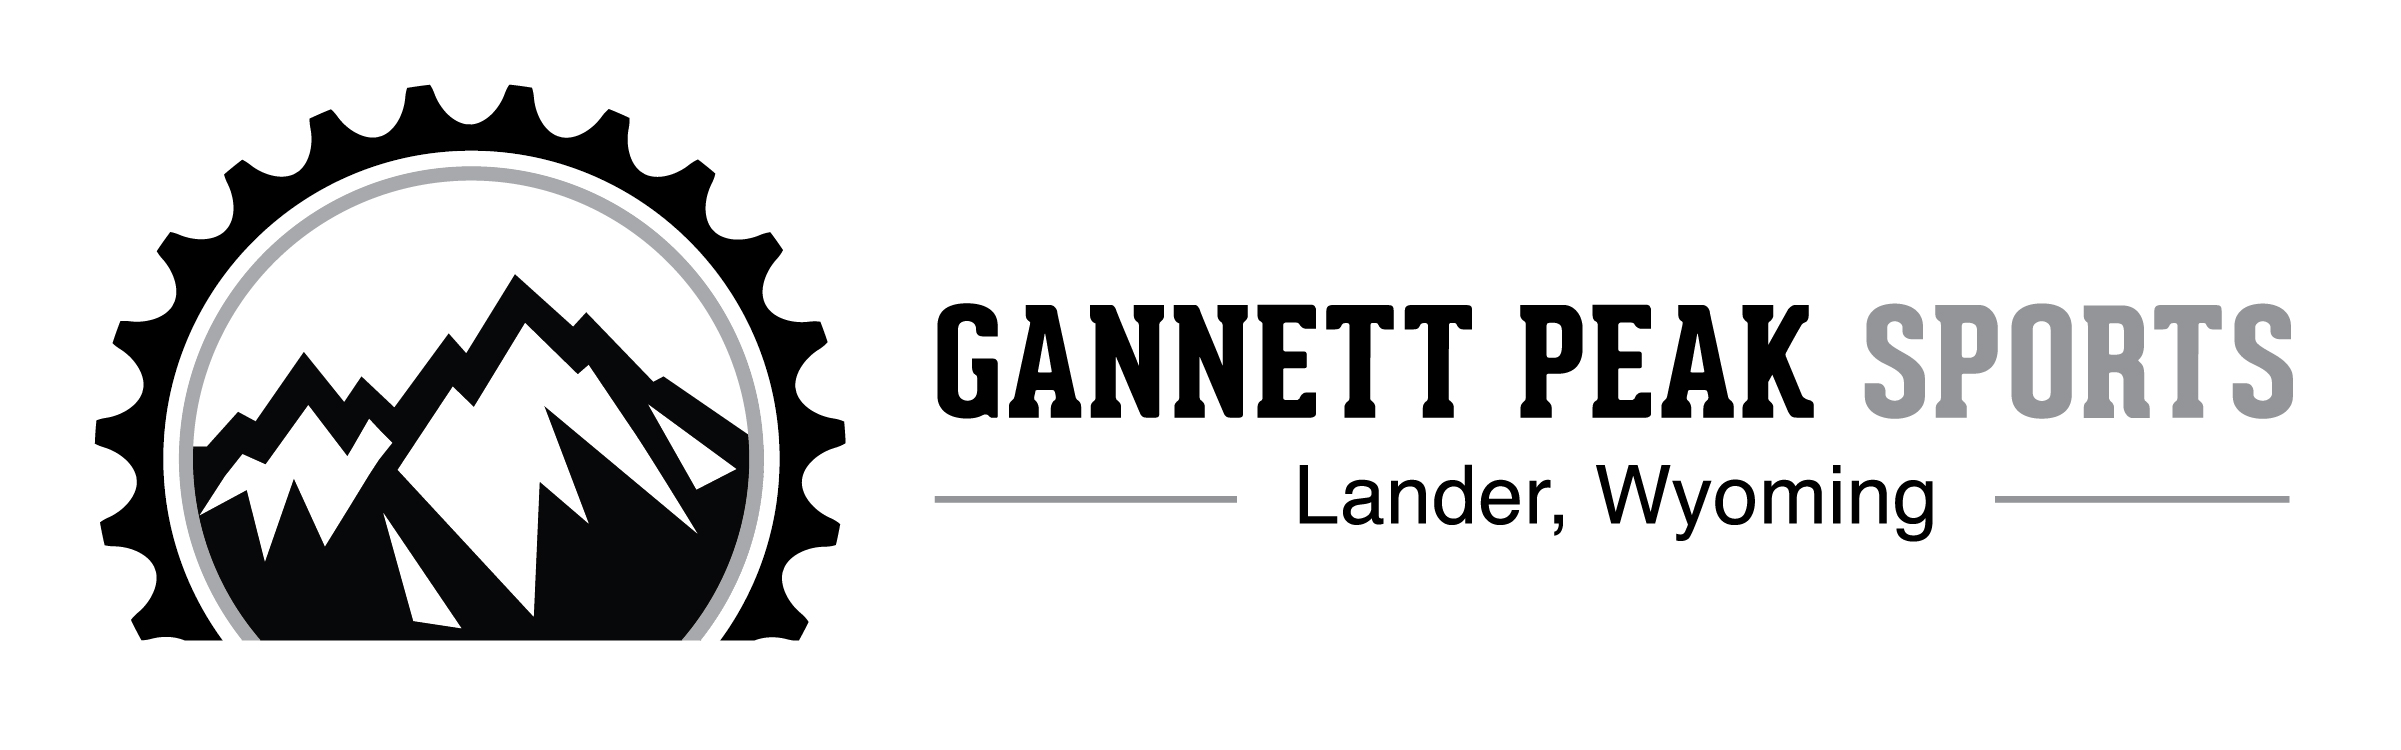 Gannett Peak Sports Home Page